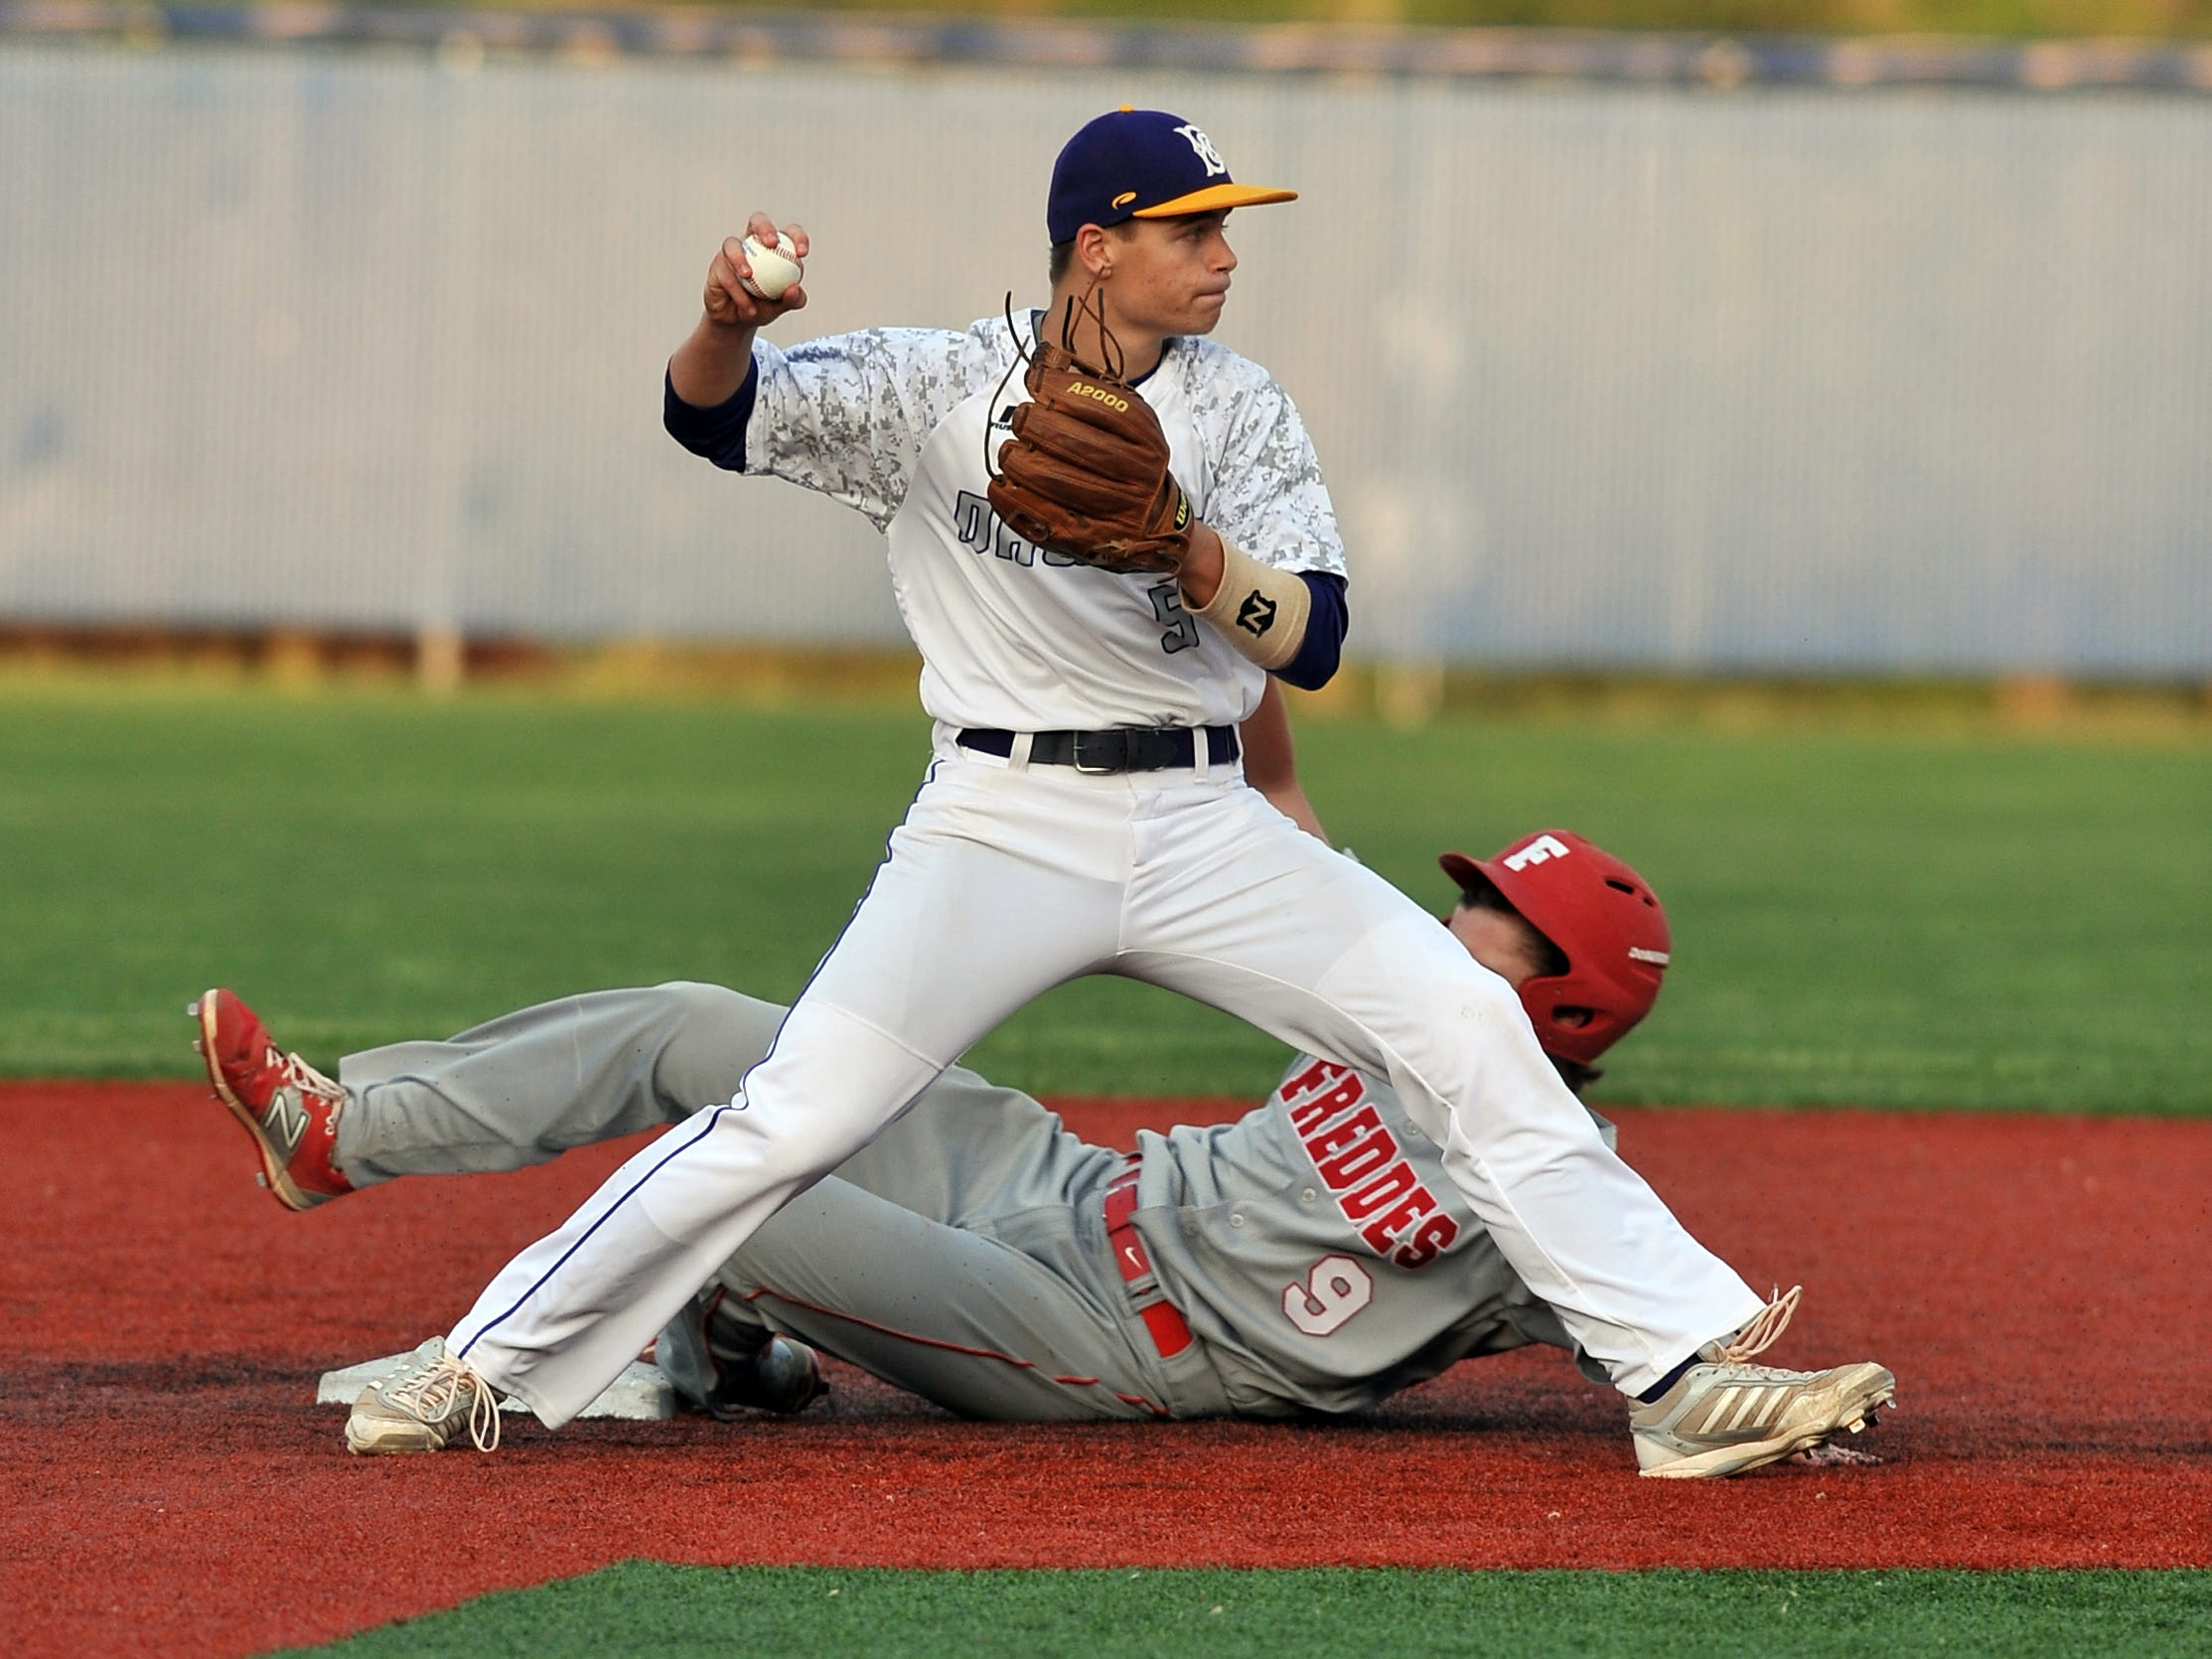 Bloom-Carroll second baseman Jack Shepherd looks to first base after recording a force out at second base against Fredricktown at Beavers Field in Lancaster. The Bulldogs won Tuesday's game 8-2.